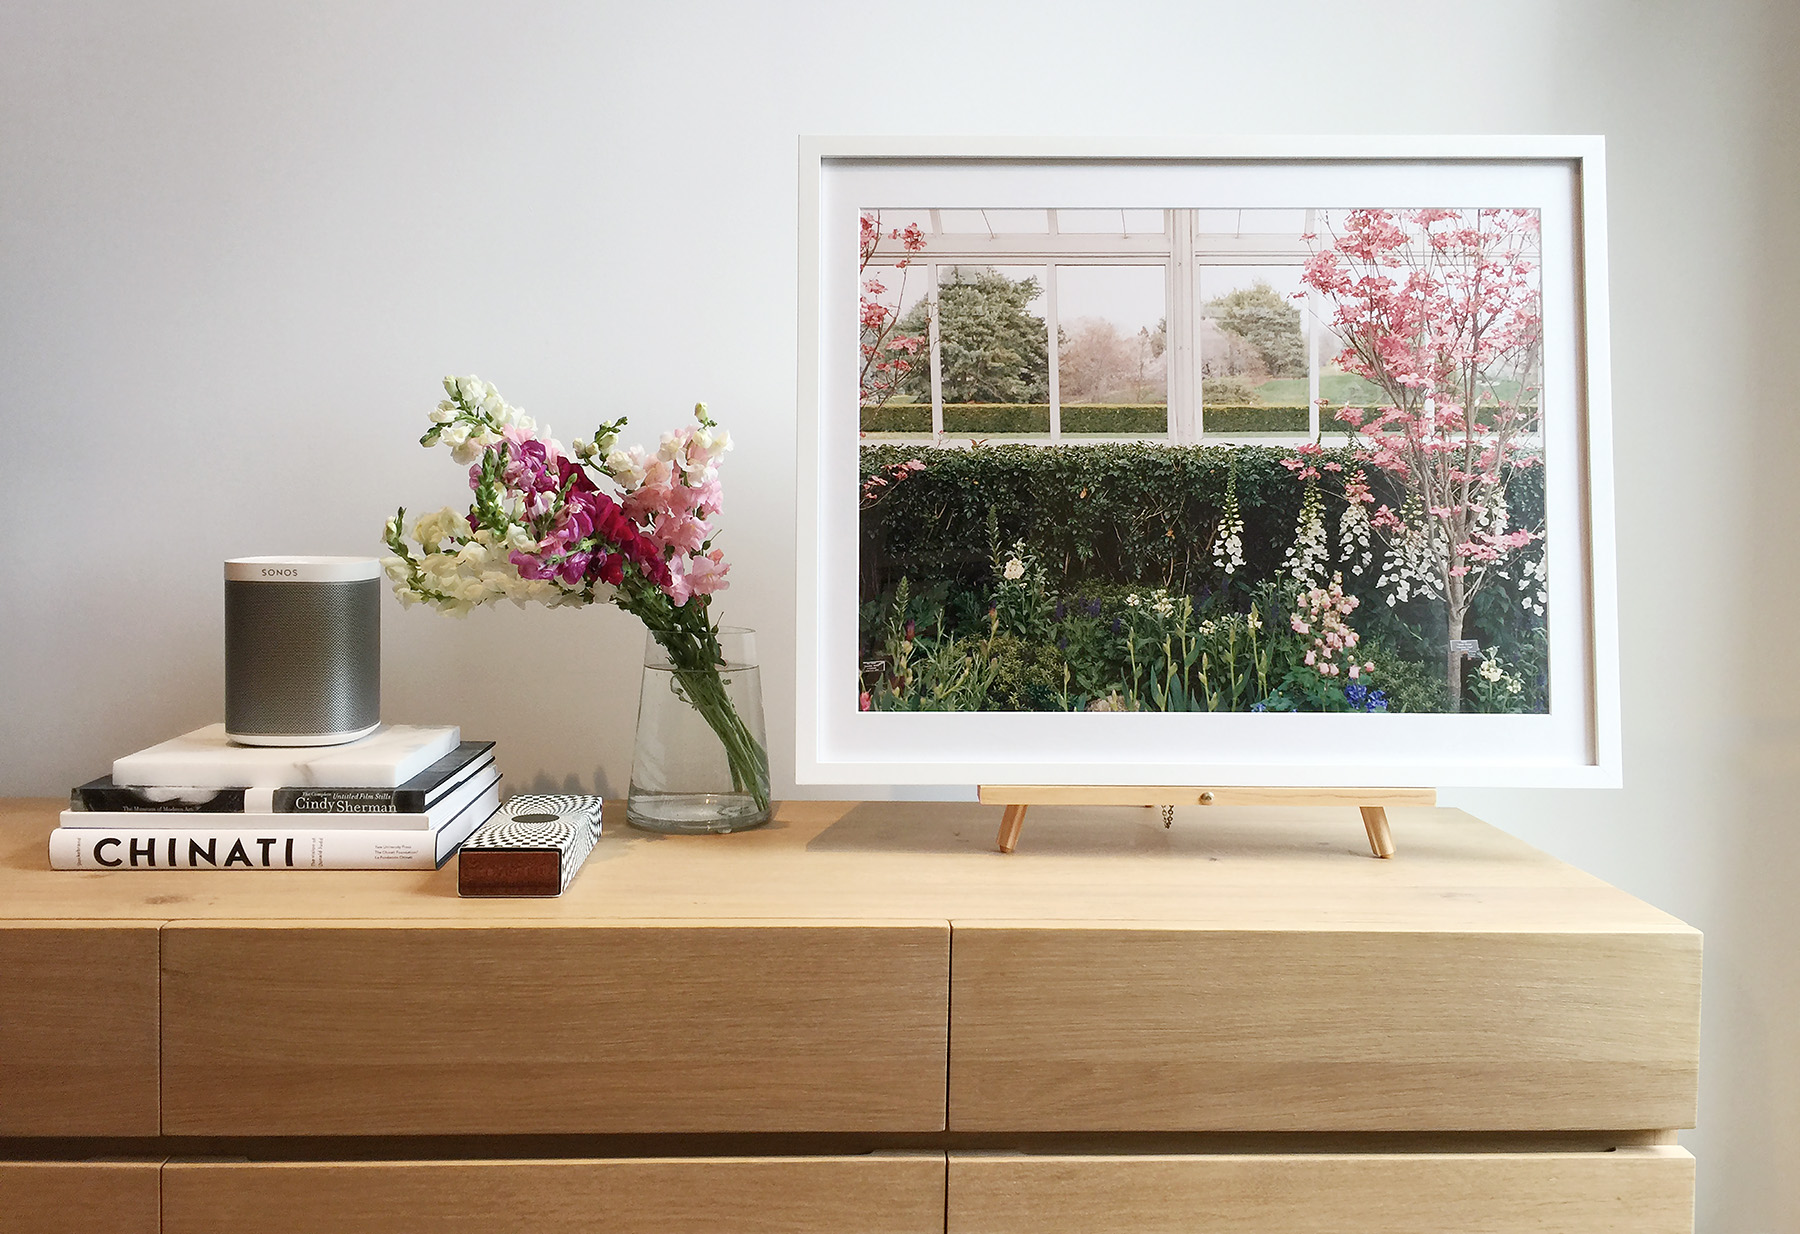 STADT Architecture, ABC Home, Fornasetti, Kitterman, STADT, nyc architects, ny apartment renovation